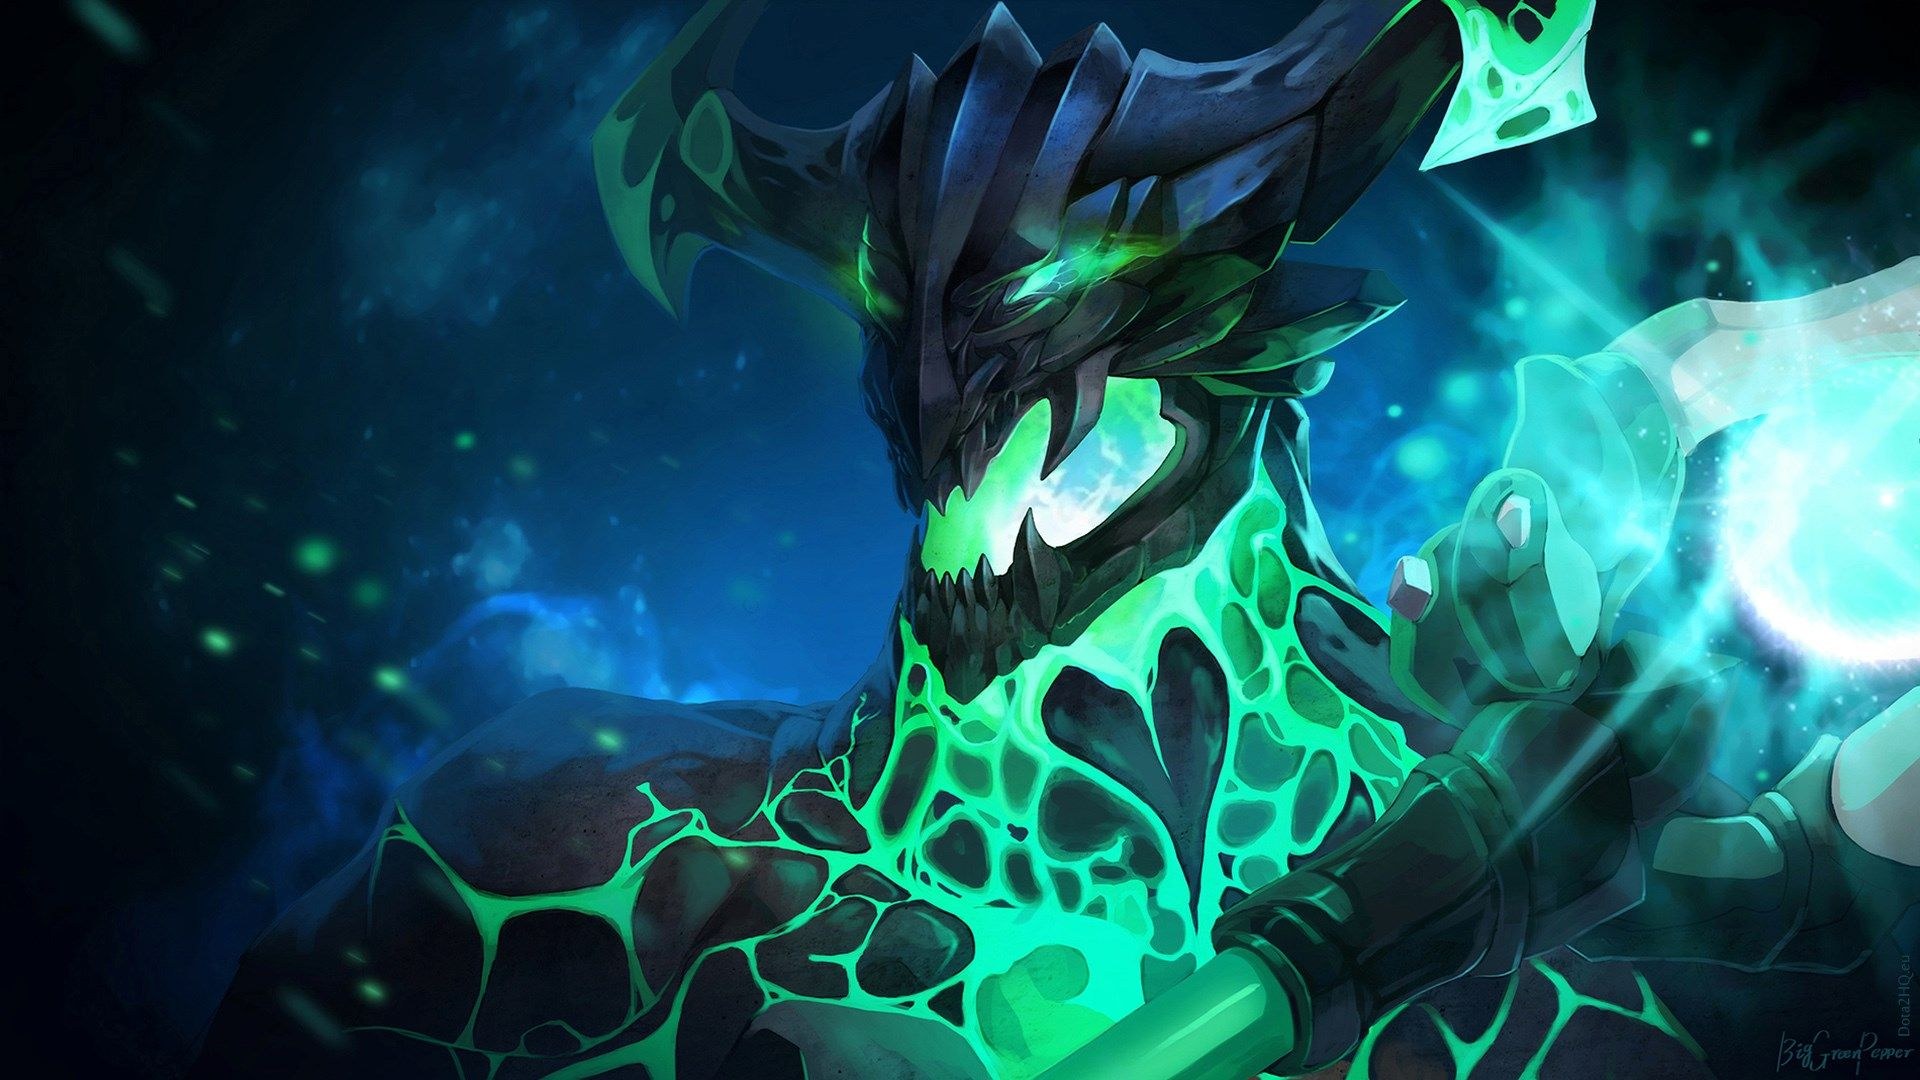 1920x1080 outworld devourer #dota 2 wallpaper hd